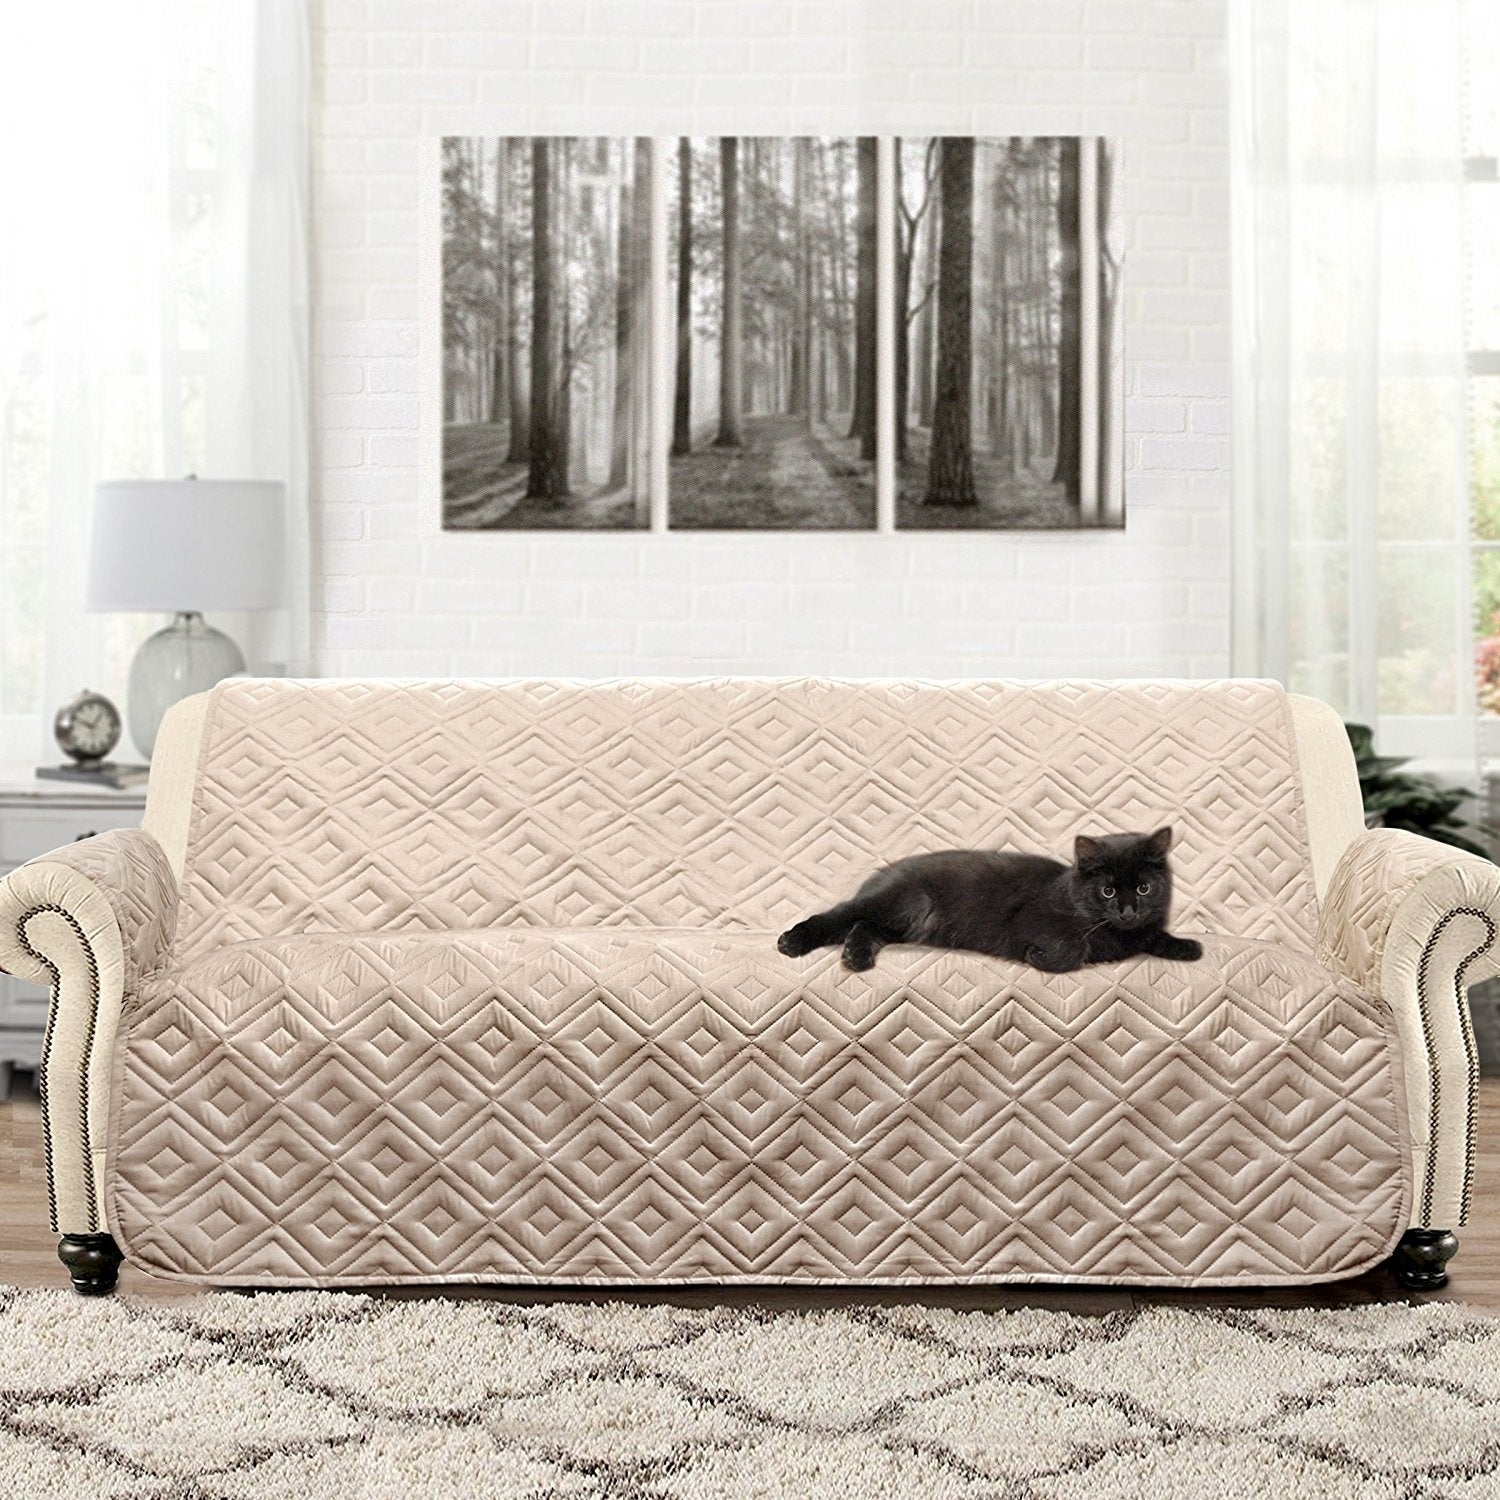 Nice DriftAway Waterproof Quilted Sofa Protector For Kids, Pets   Free Shipping  On Orders Over $45   Overstock   25434580